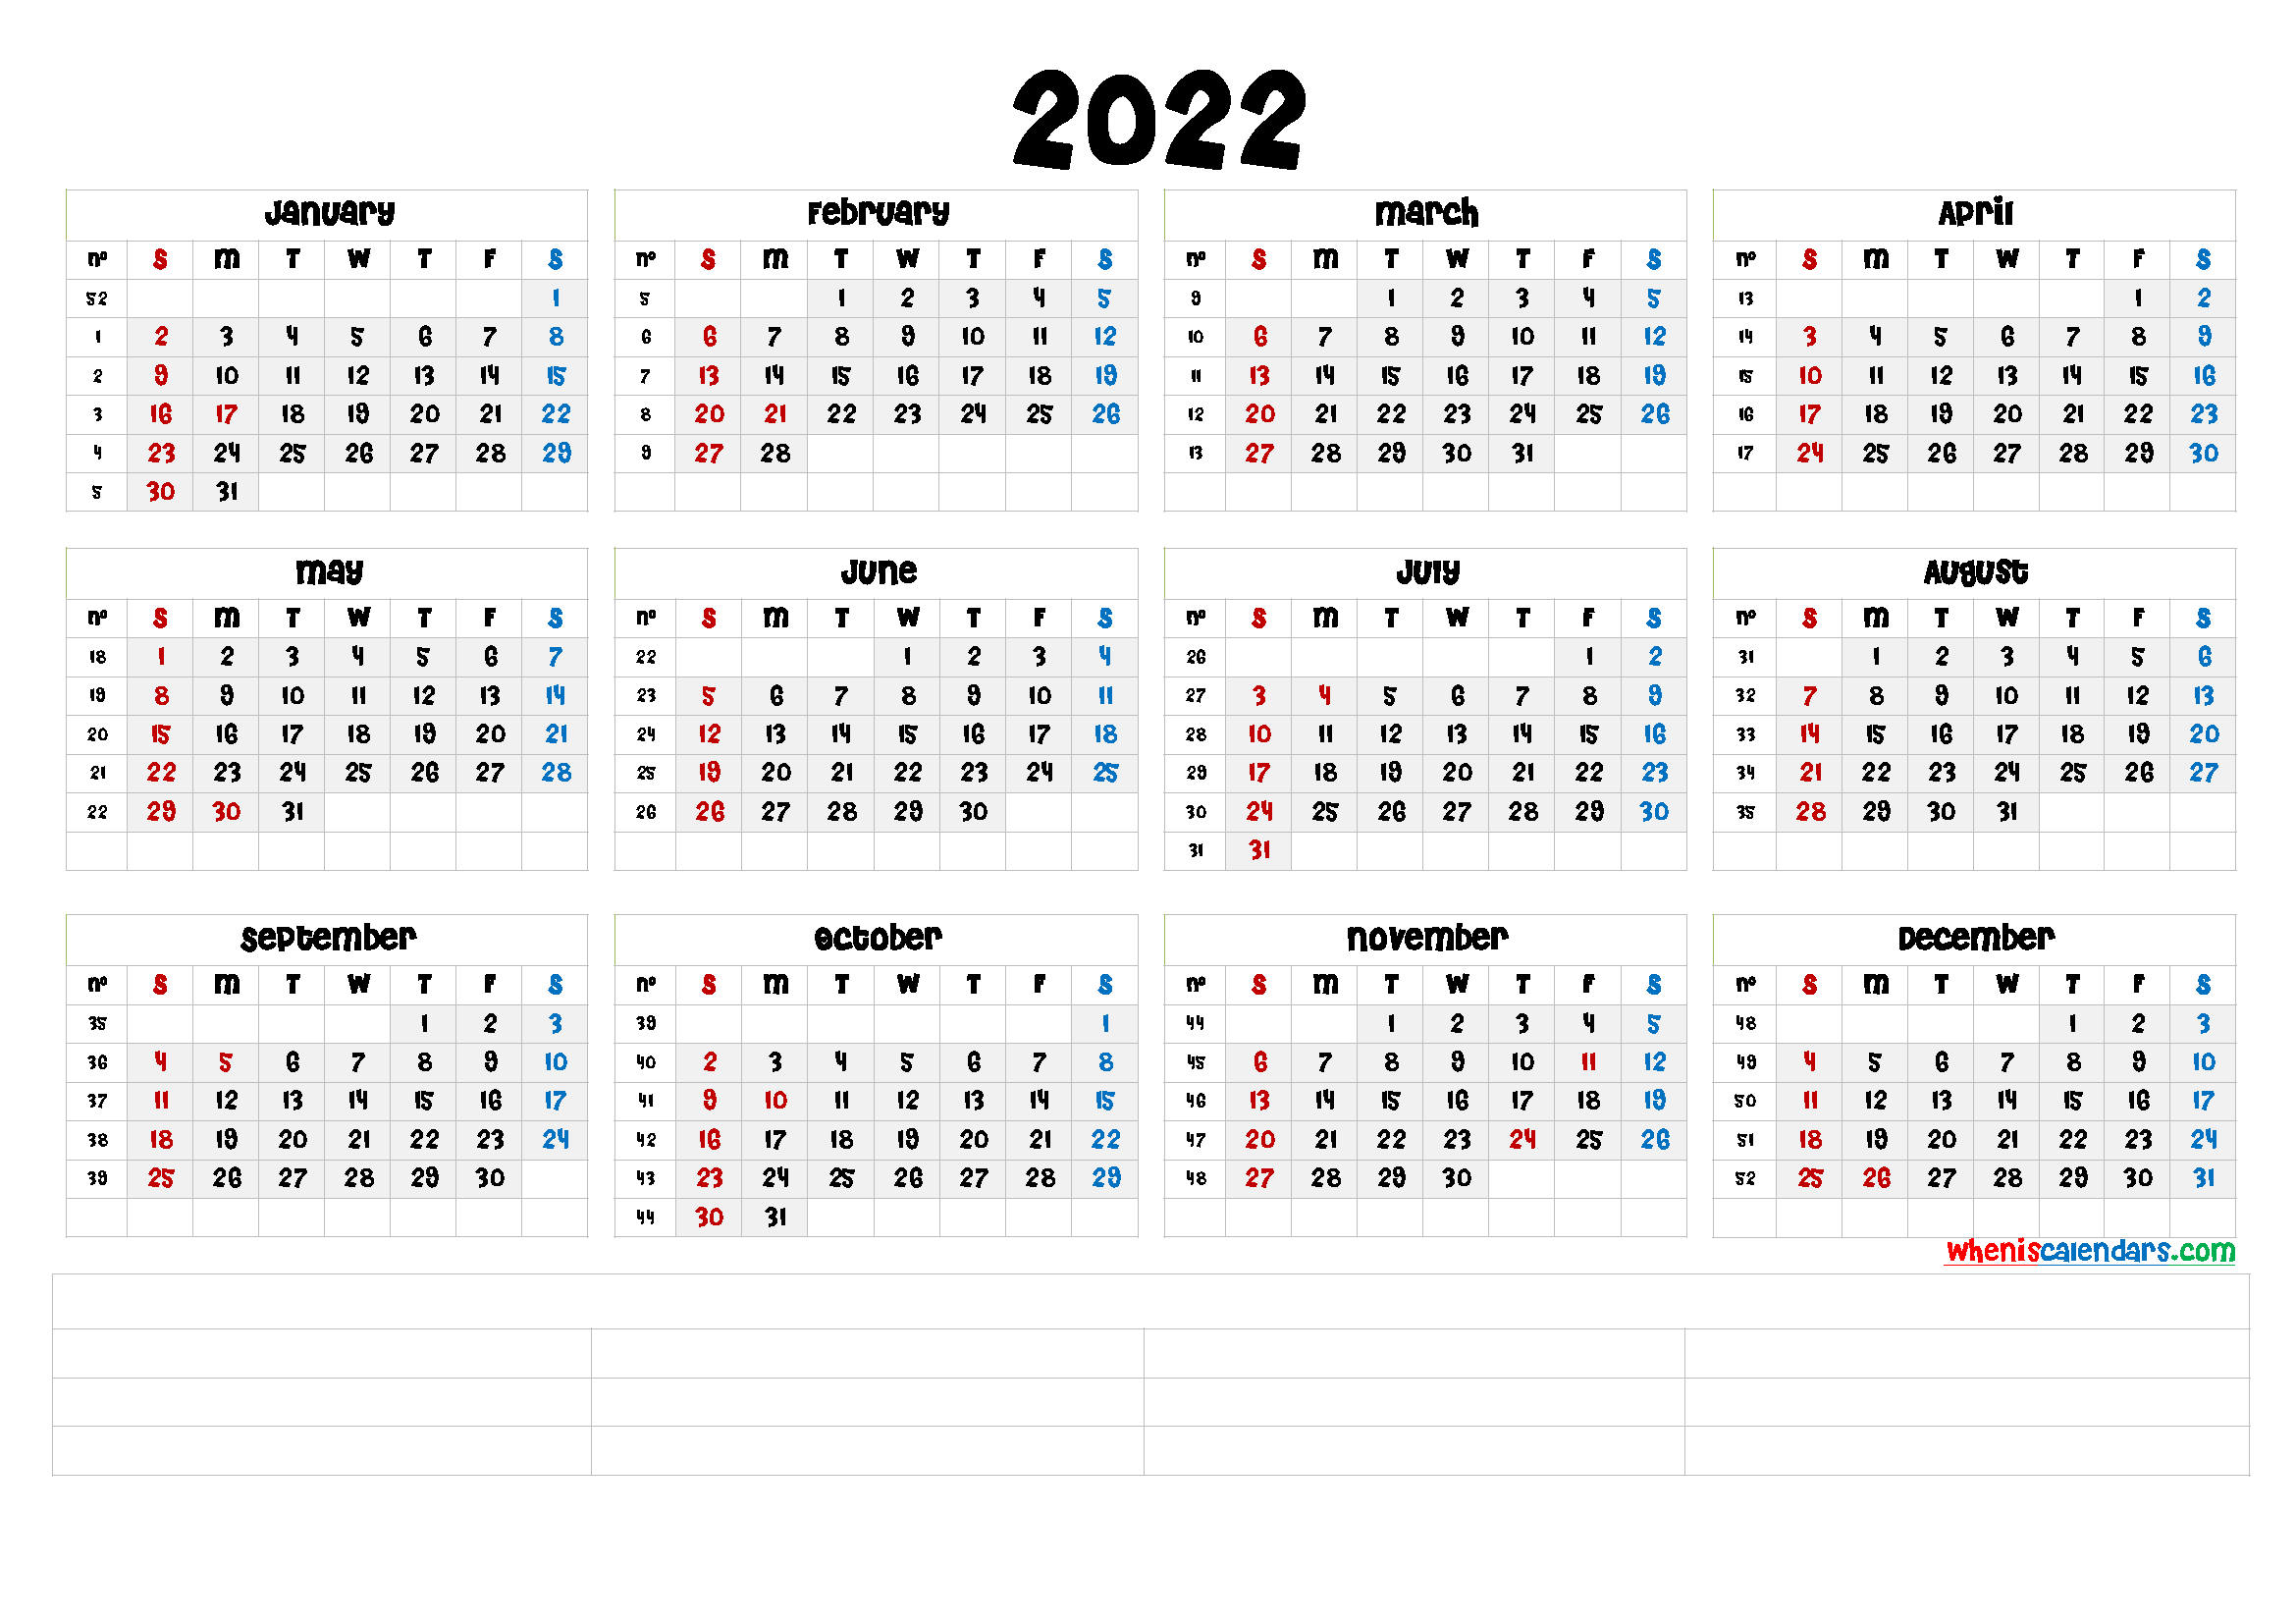 Free Printable 2022 Calendarmonth (6 Templates) - Free with Julian Date The Years Only 2022